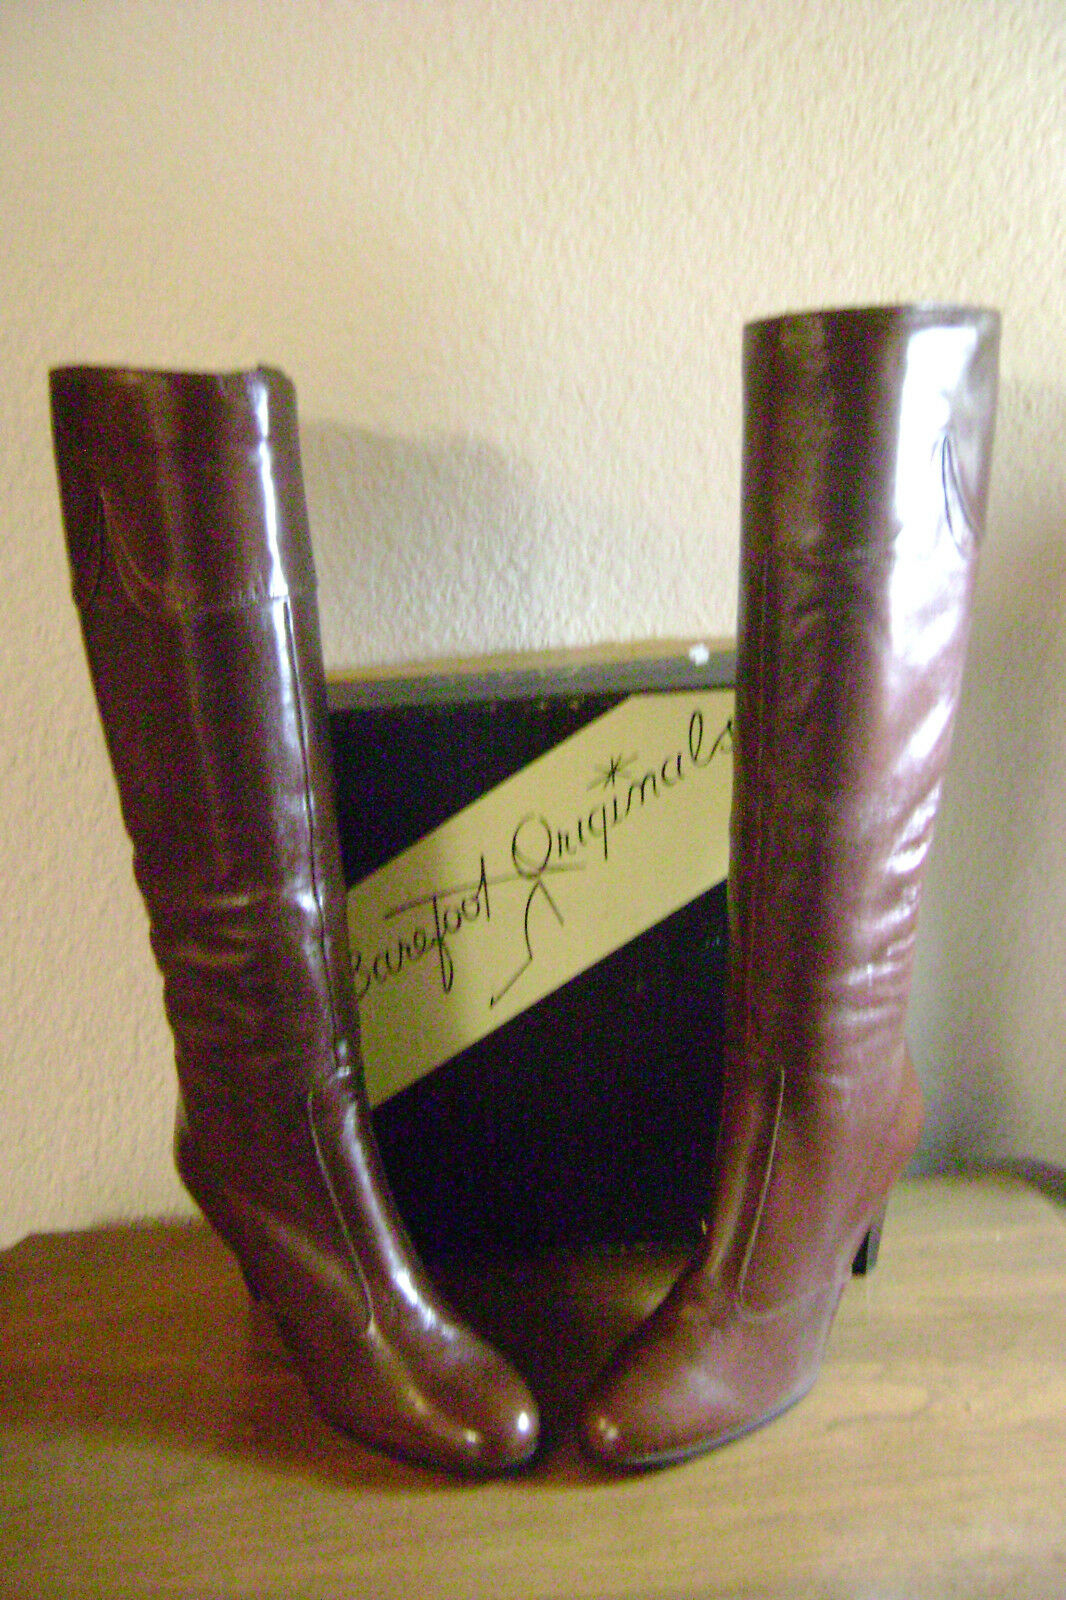 BAREFOOT ORIGINALS BROWN CALF SKIN LEATHER KNEE HIGH BOOTS, NEW IN BOX, SIZE 6 M